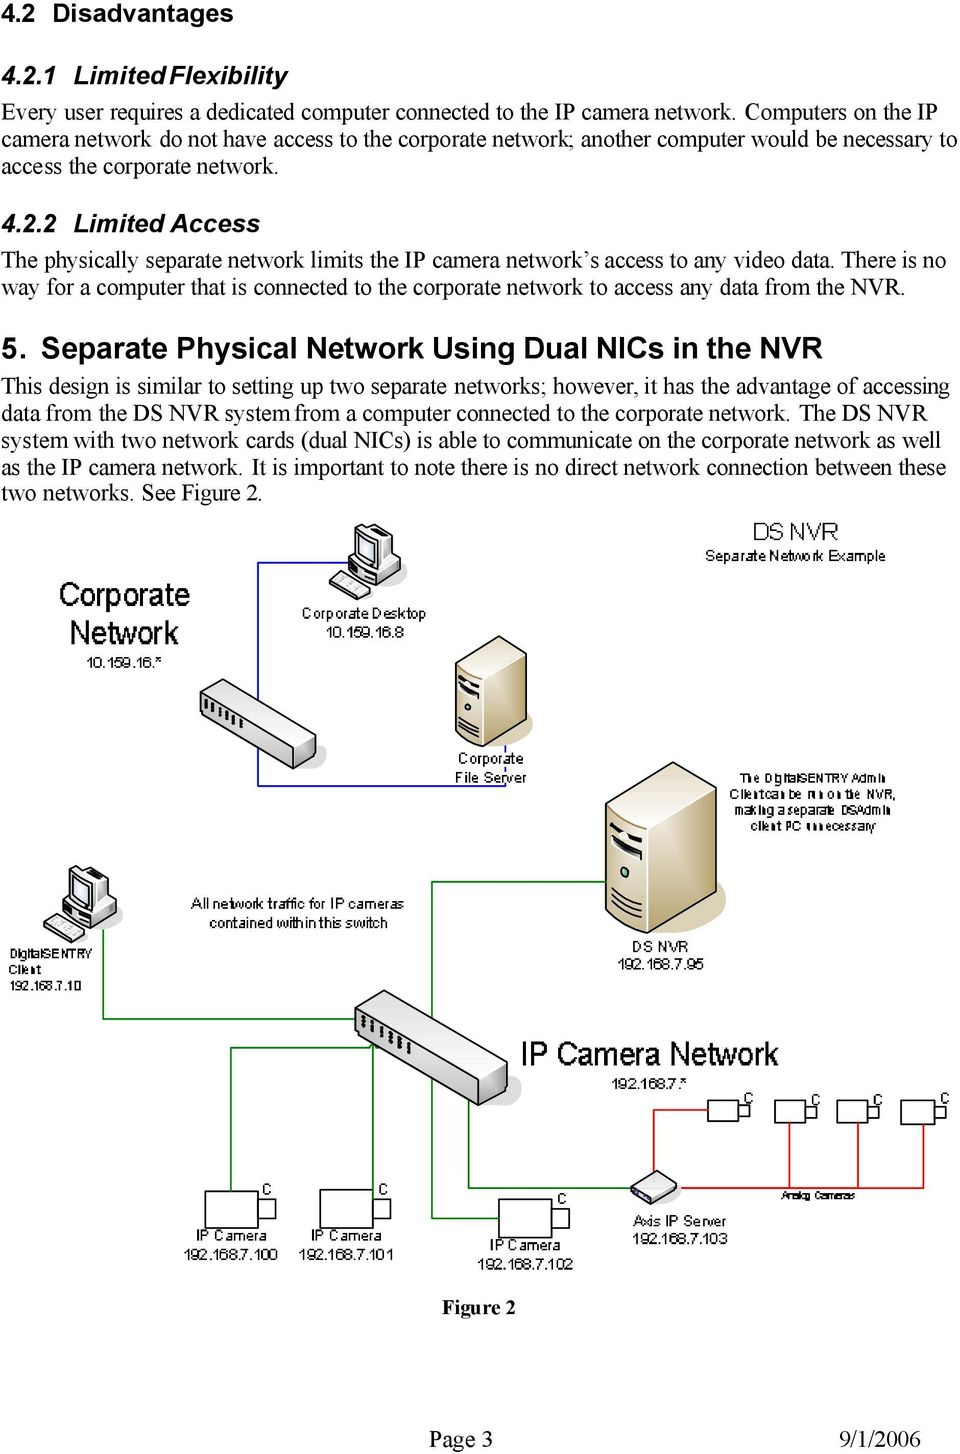 Ds Nvr Prospective Network Configurations Pdf Wiring Diagram Switch 2 Limited Access The Physically Separate Limits Ip Camera S To Any